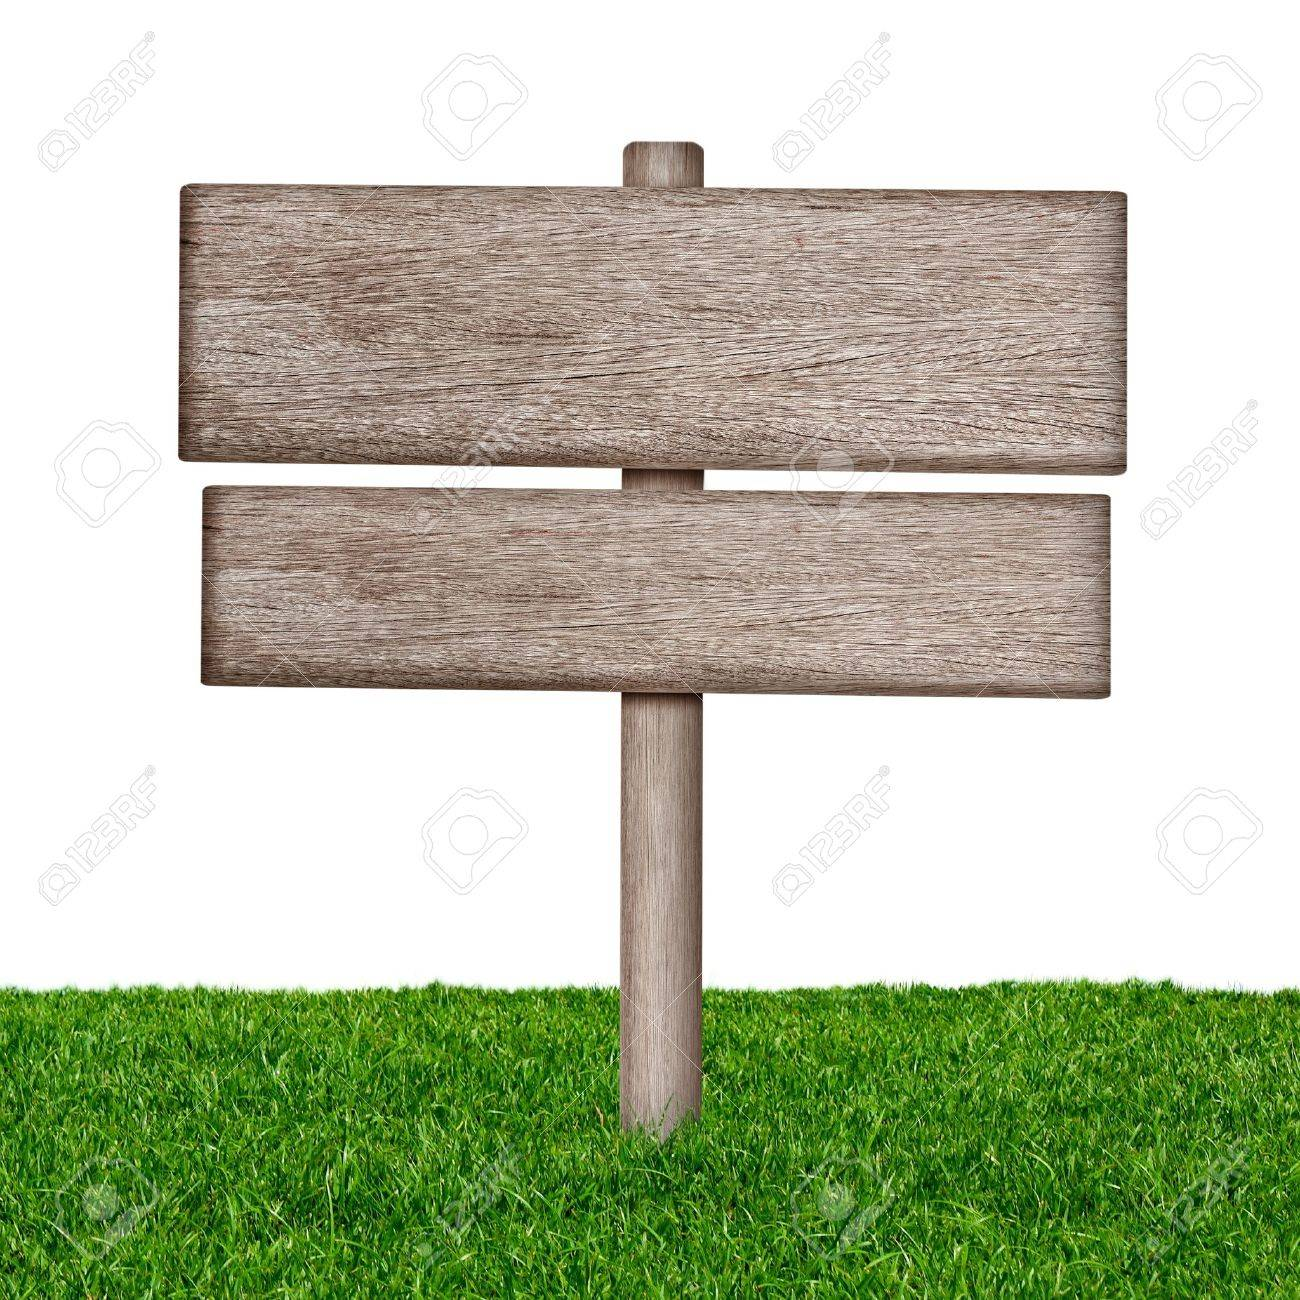 Wooden sign with green grass isolated on a white background - 15443359